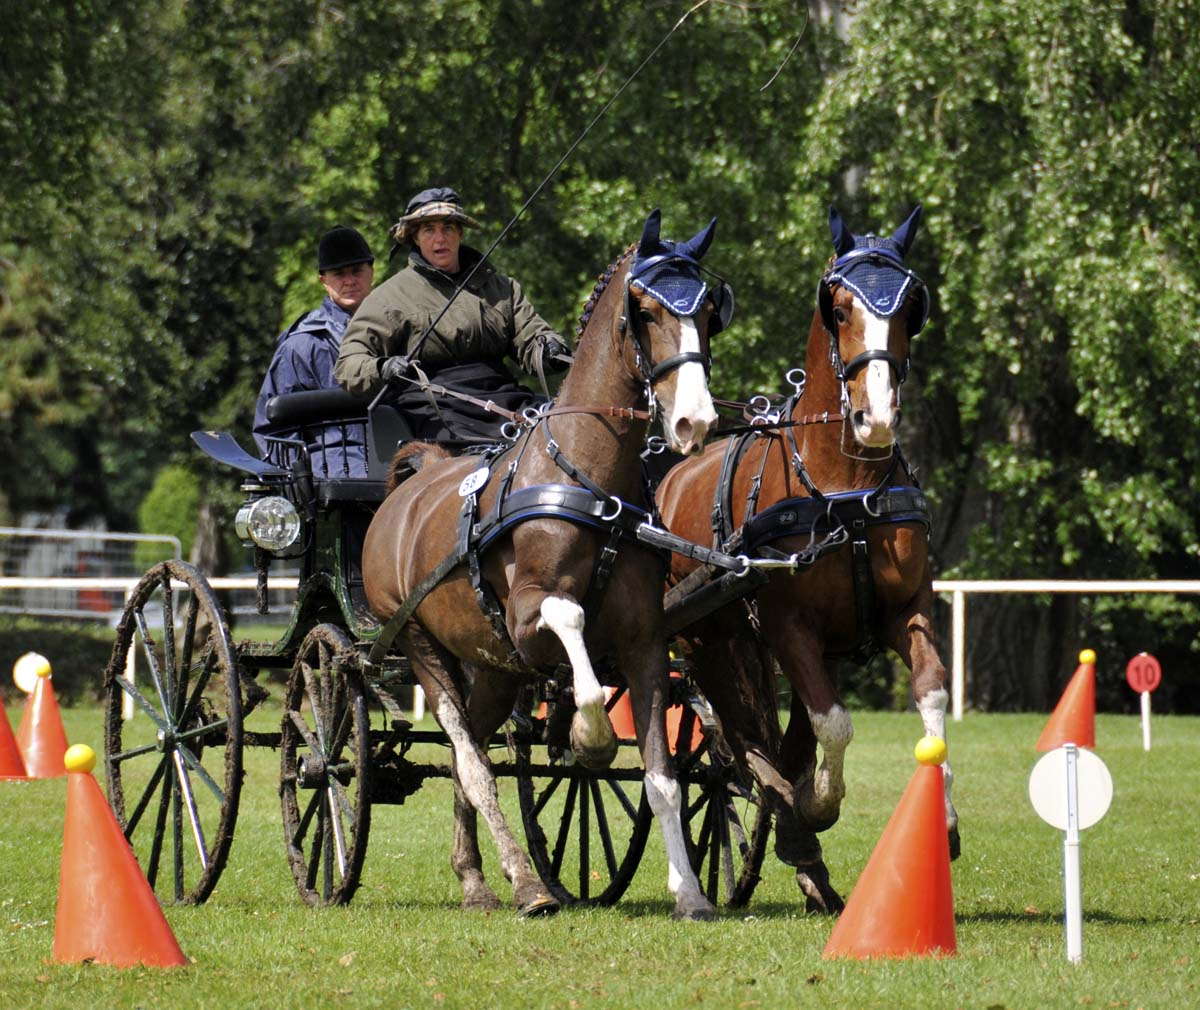 American driver Randy Cadwell on the cones course with her pair of horses